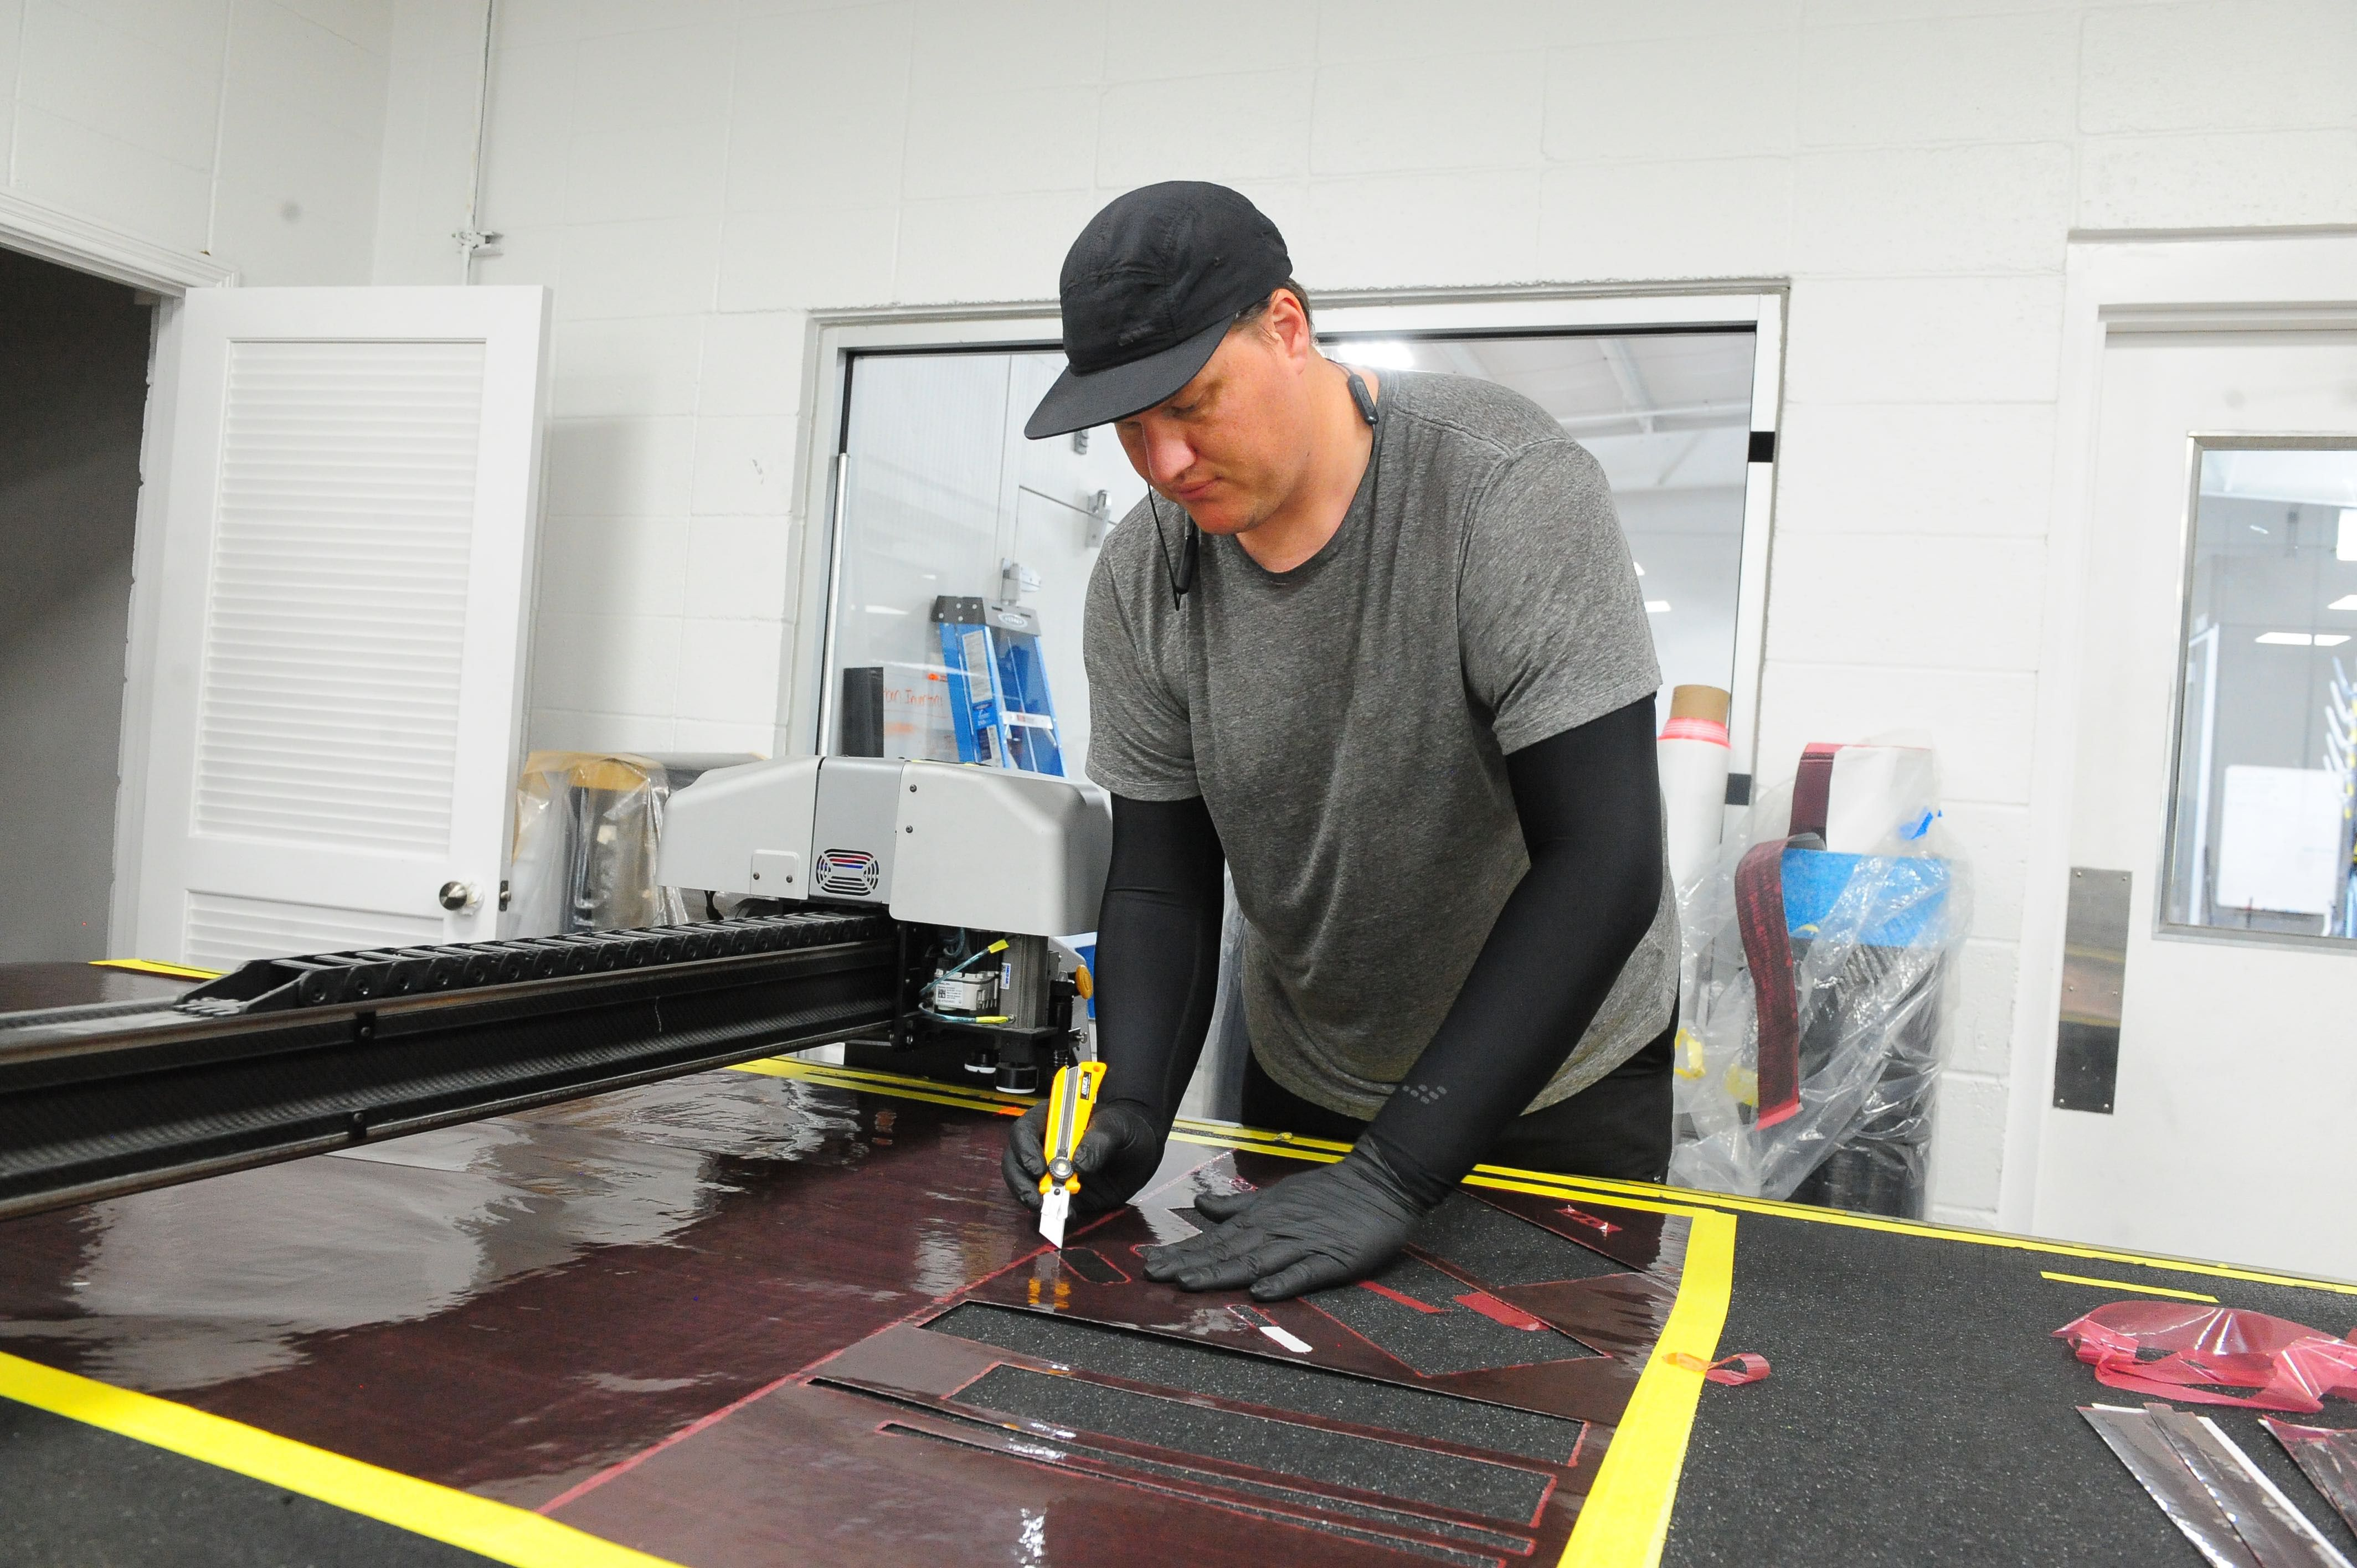 A worker cuts pieces of carbon from a sheet.